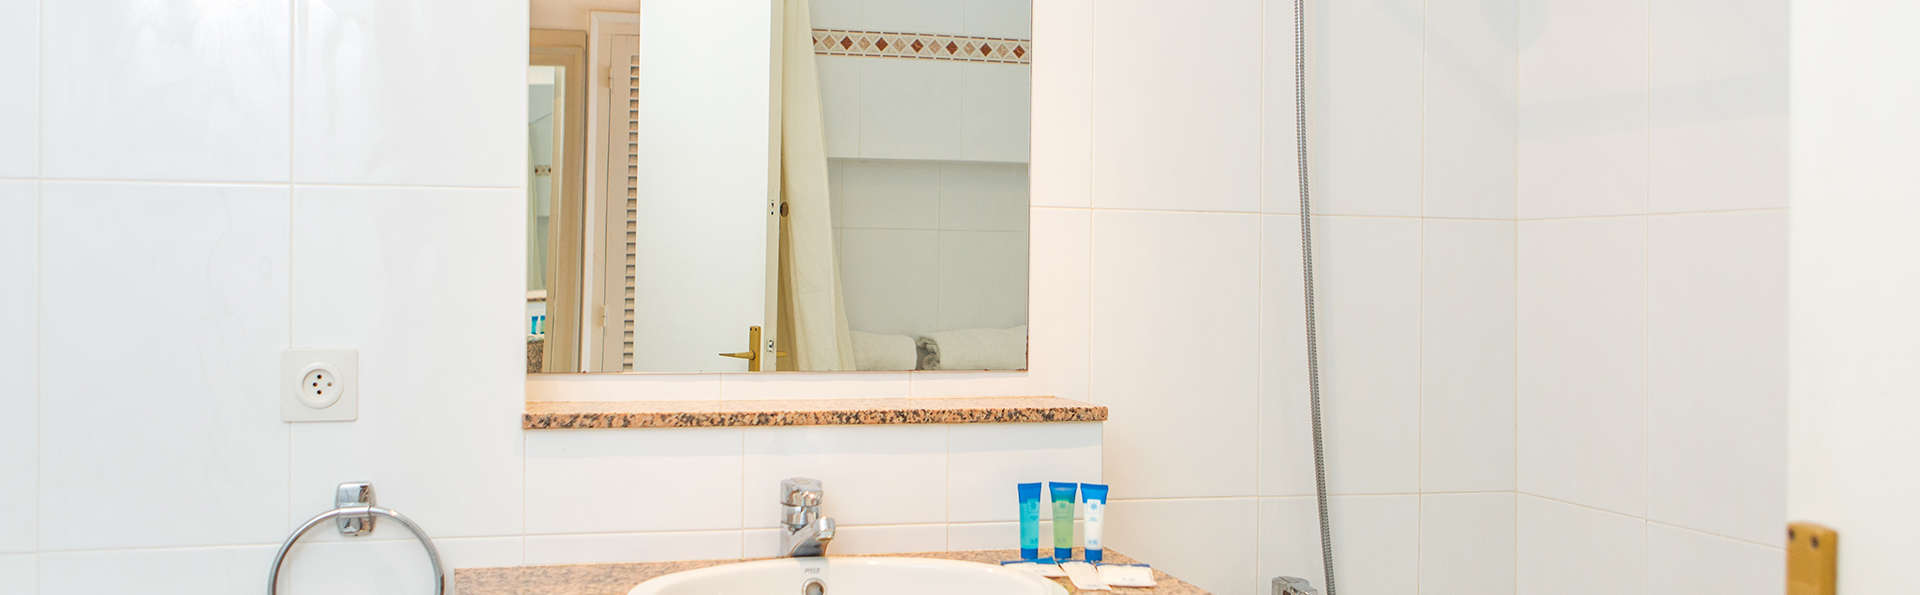 RVHotels Golf Costa Brava - EDIT_BATHROOM.jpg